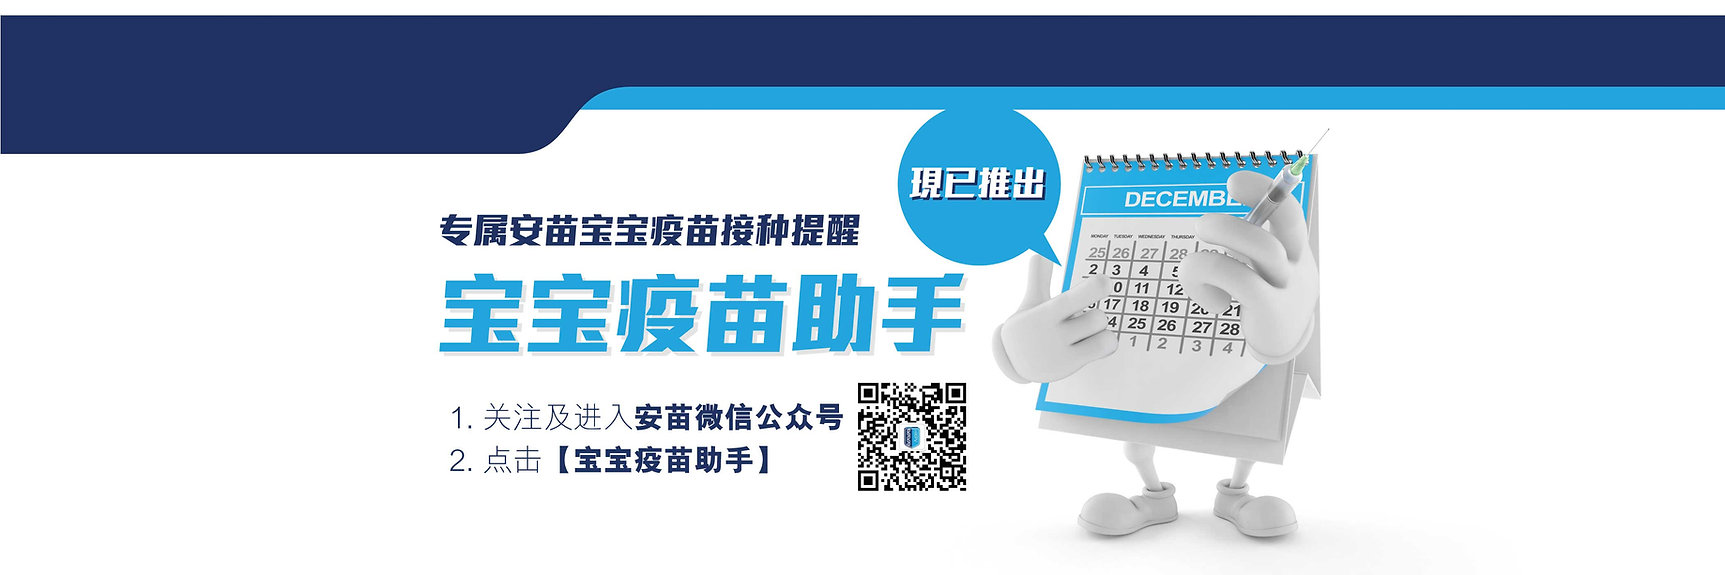 Compress_HKPV-E-shop-banner-6January2020